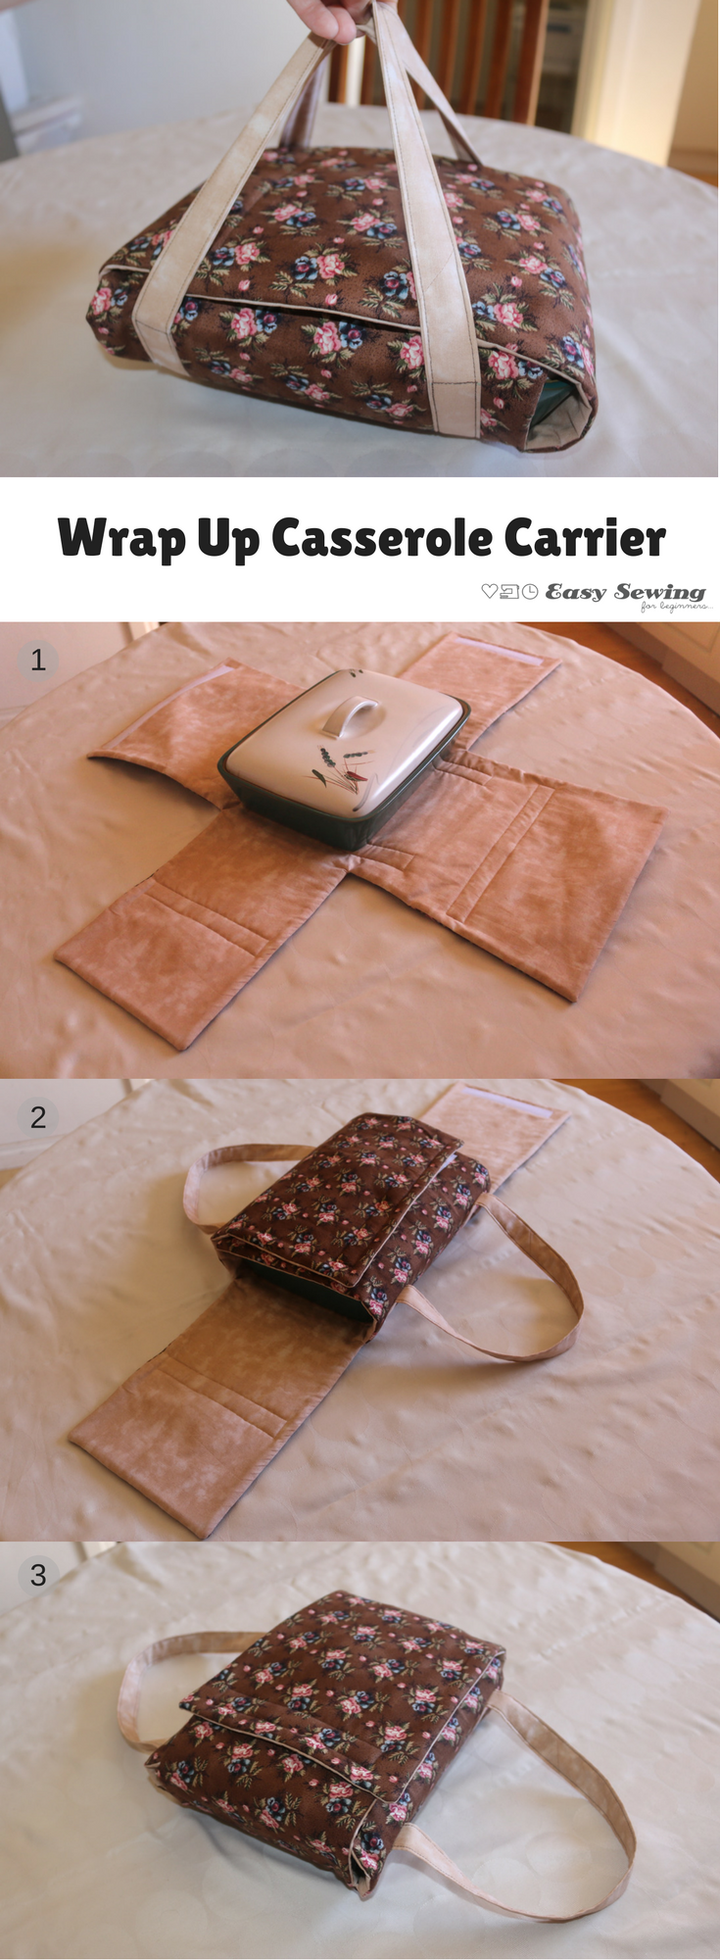 Wrap Up Casserole Cover - Easy Sewing For Beginners